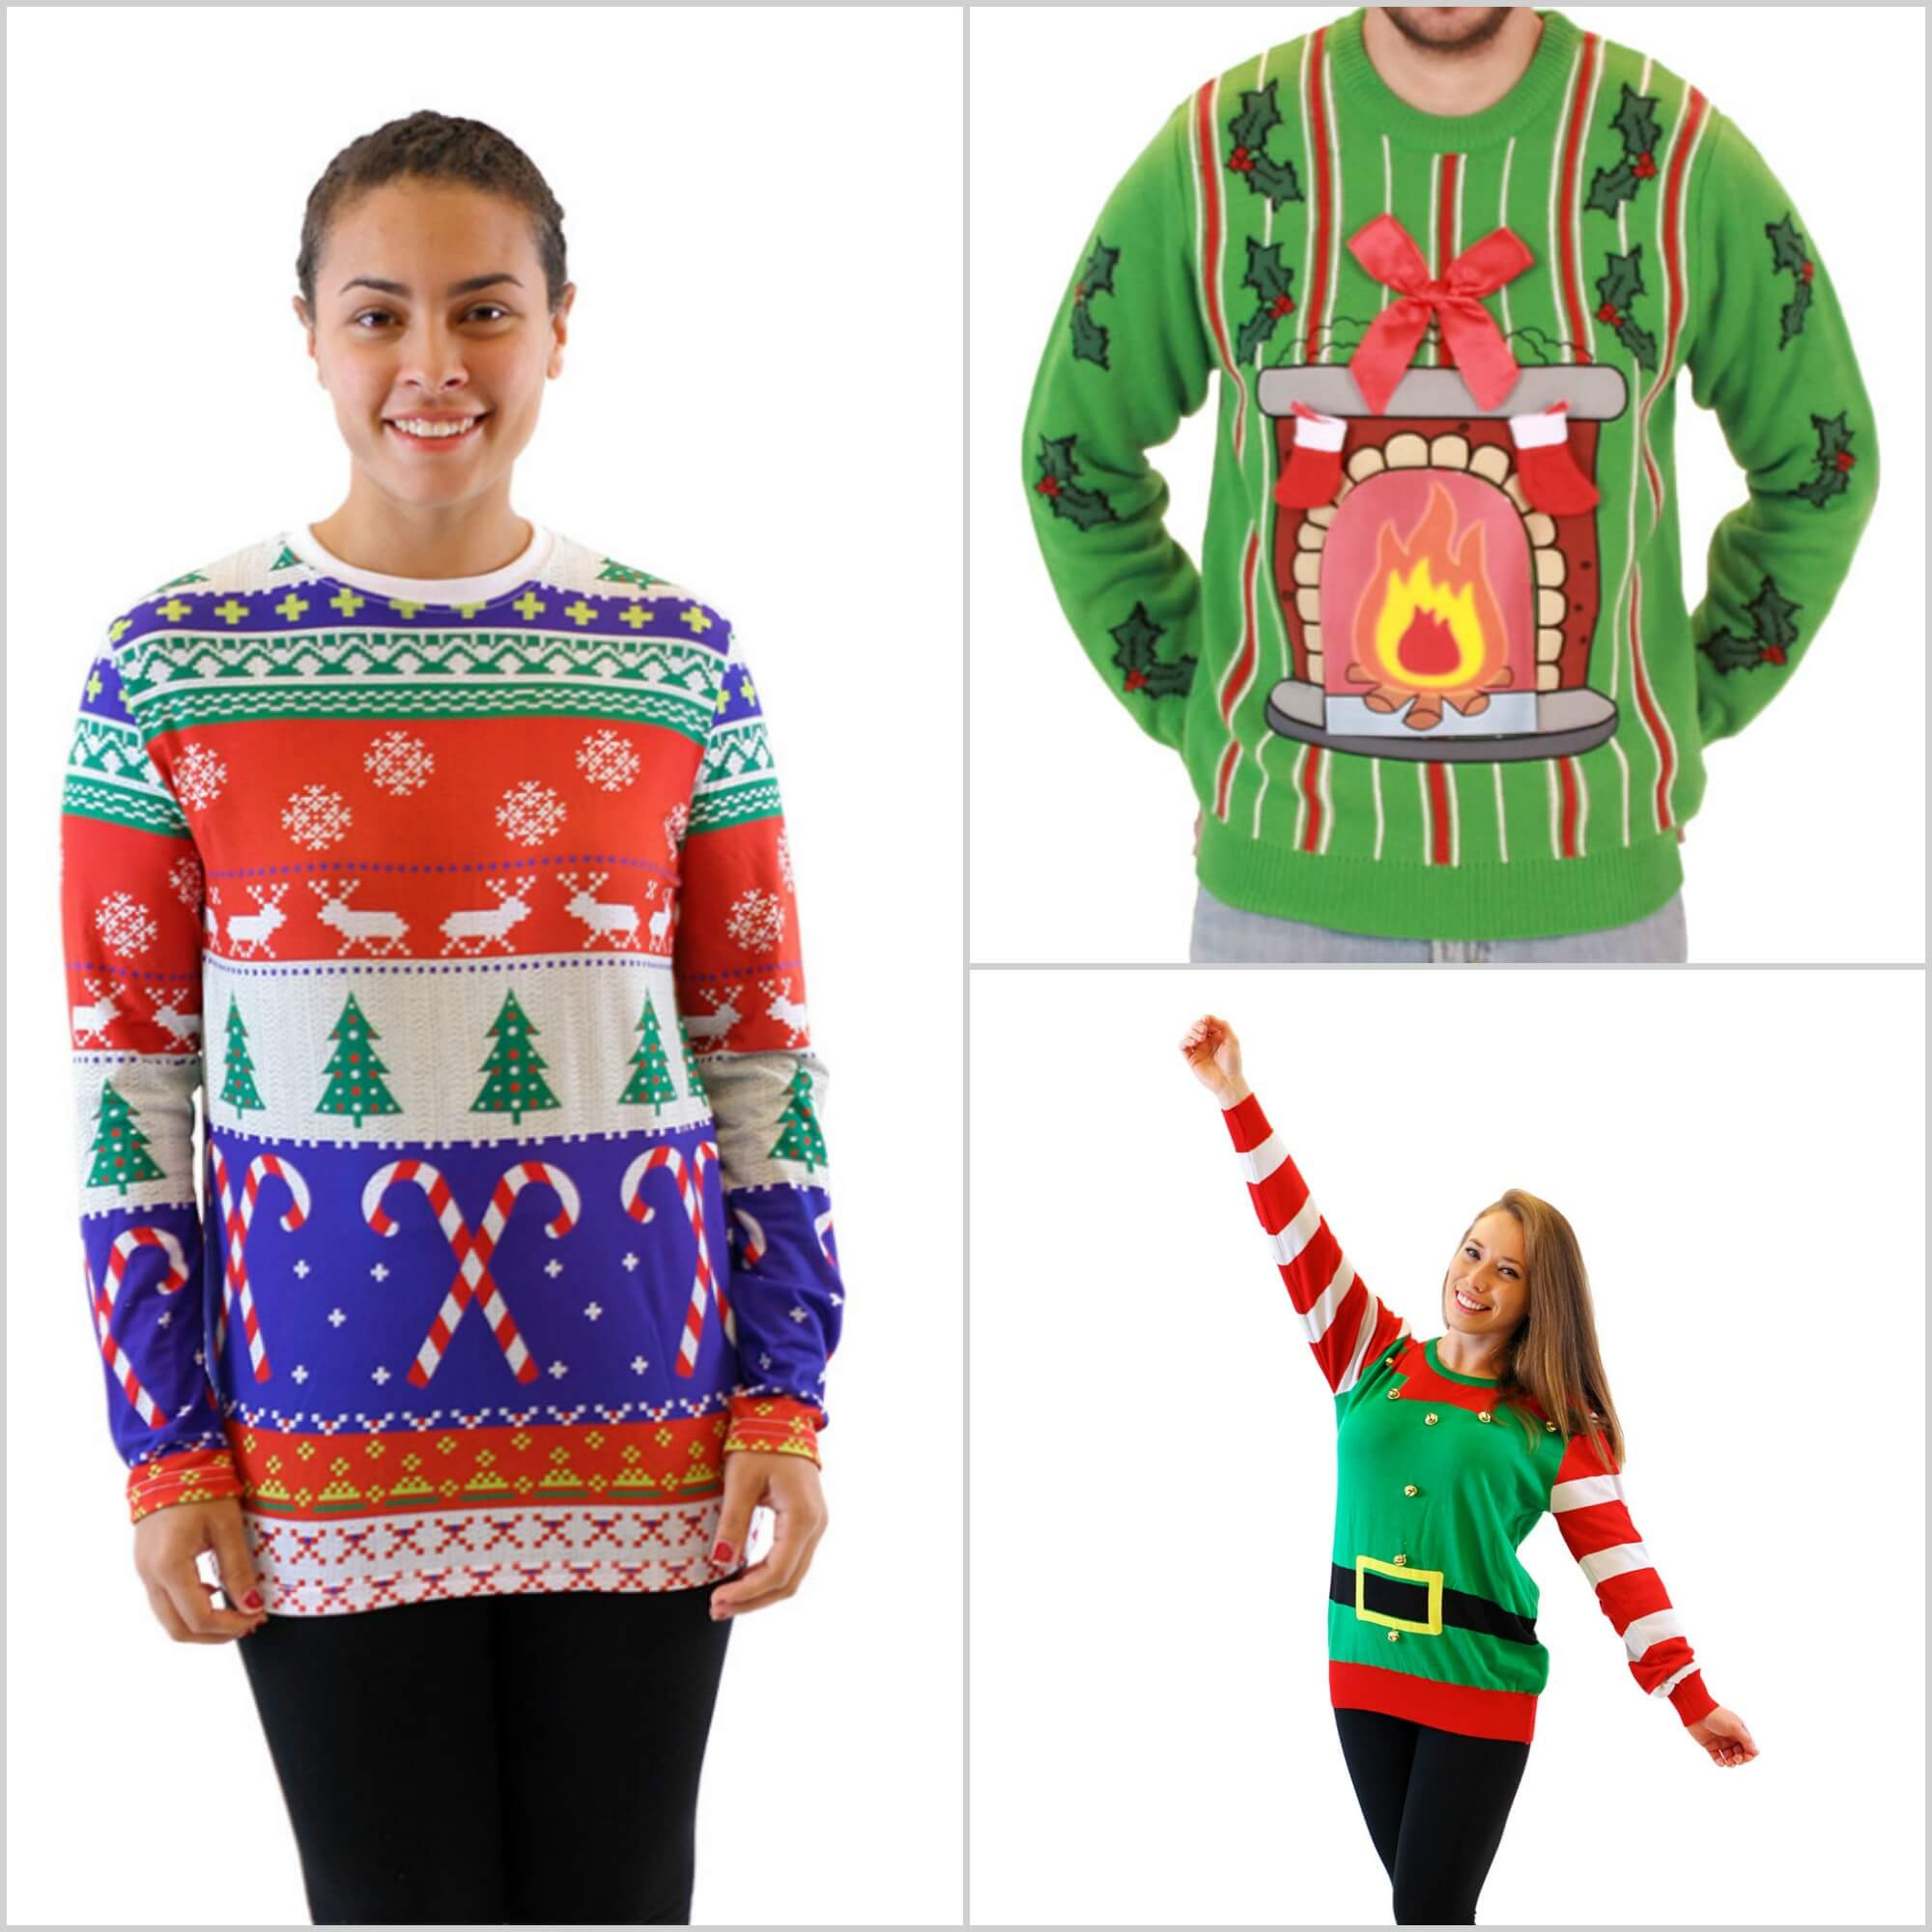 Where can i buy a ugly christmas sweater